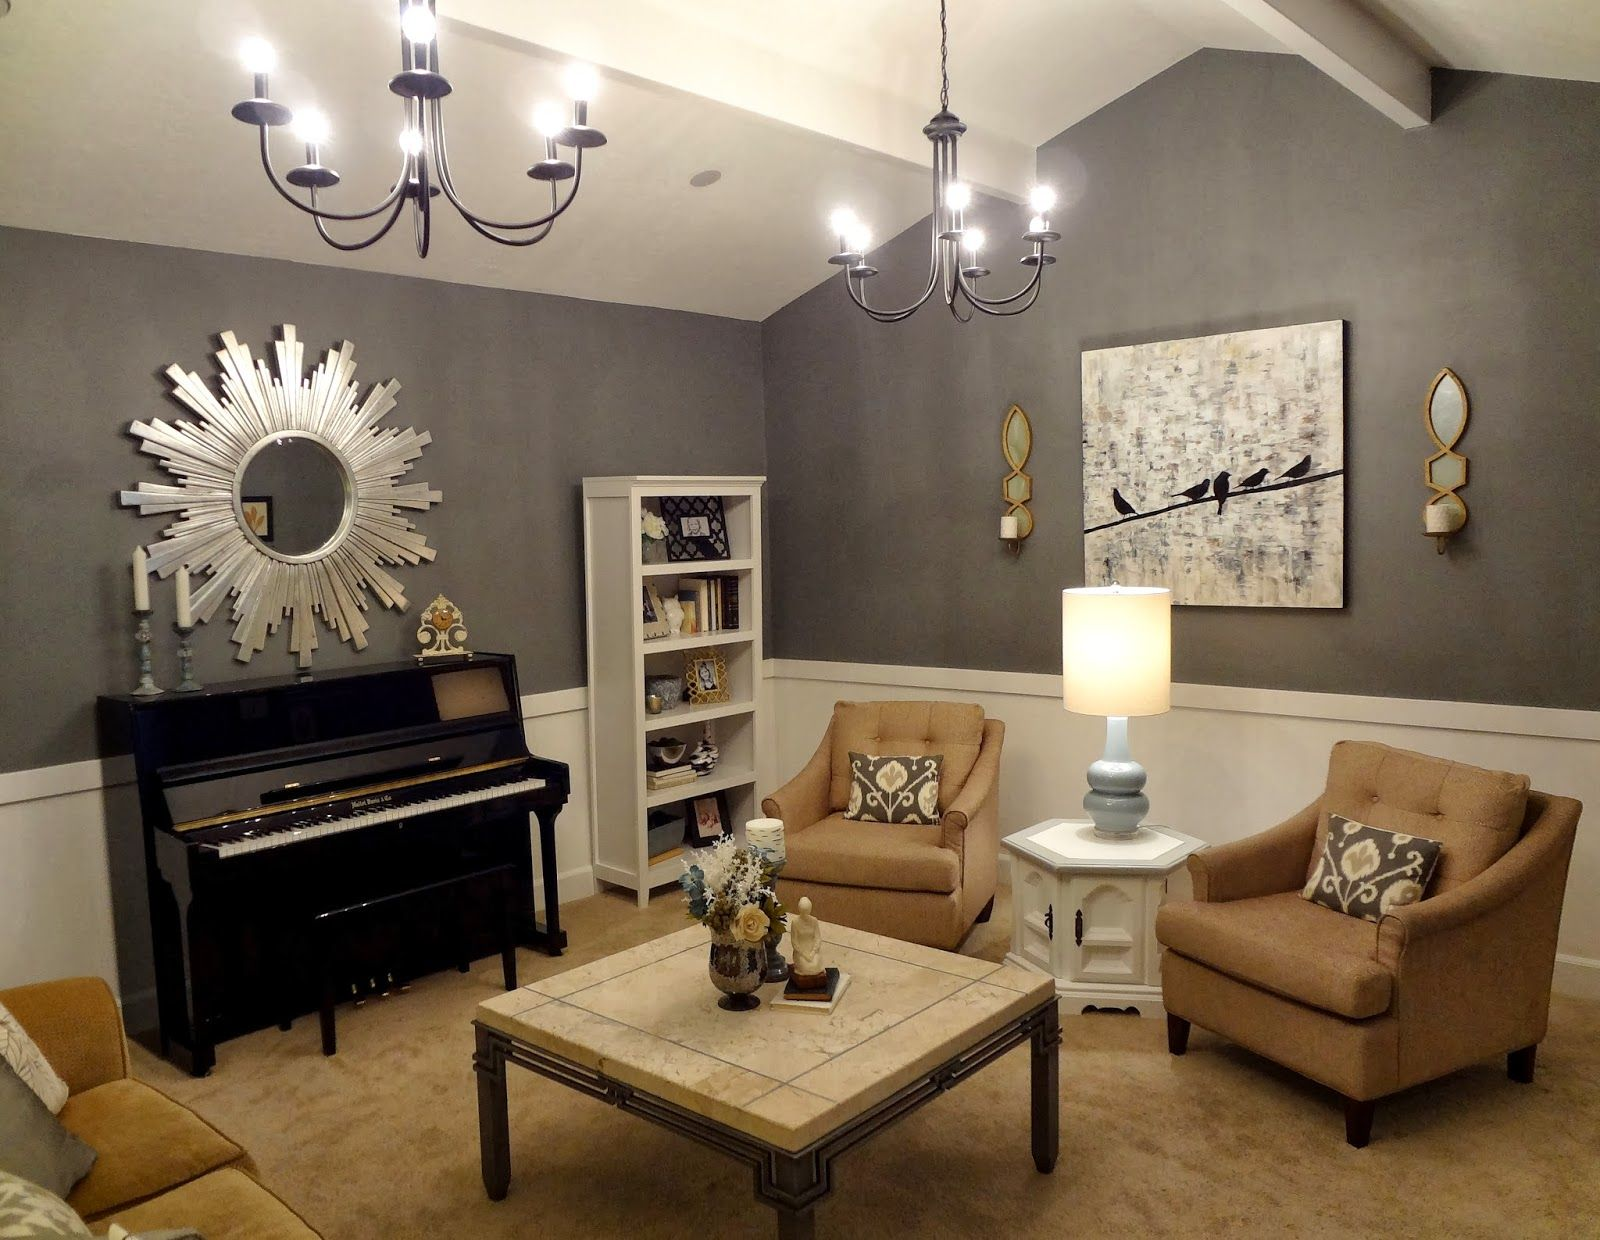 Living Room Design With Upright Piano Upright Piano Piano Ballard Designs Lowes Ove Piano Living Rooms Livingroom Layout Living Room Furniture Layout